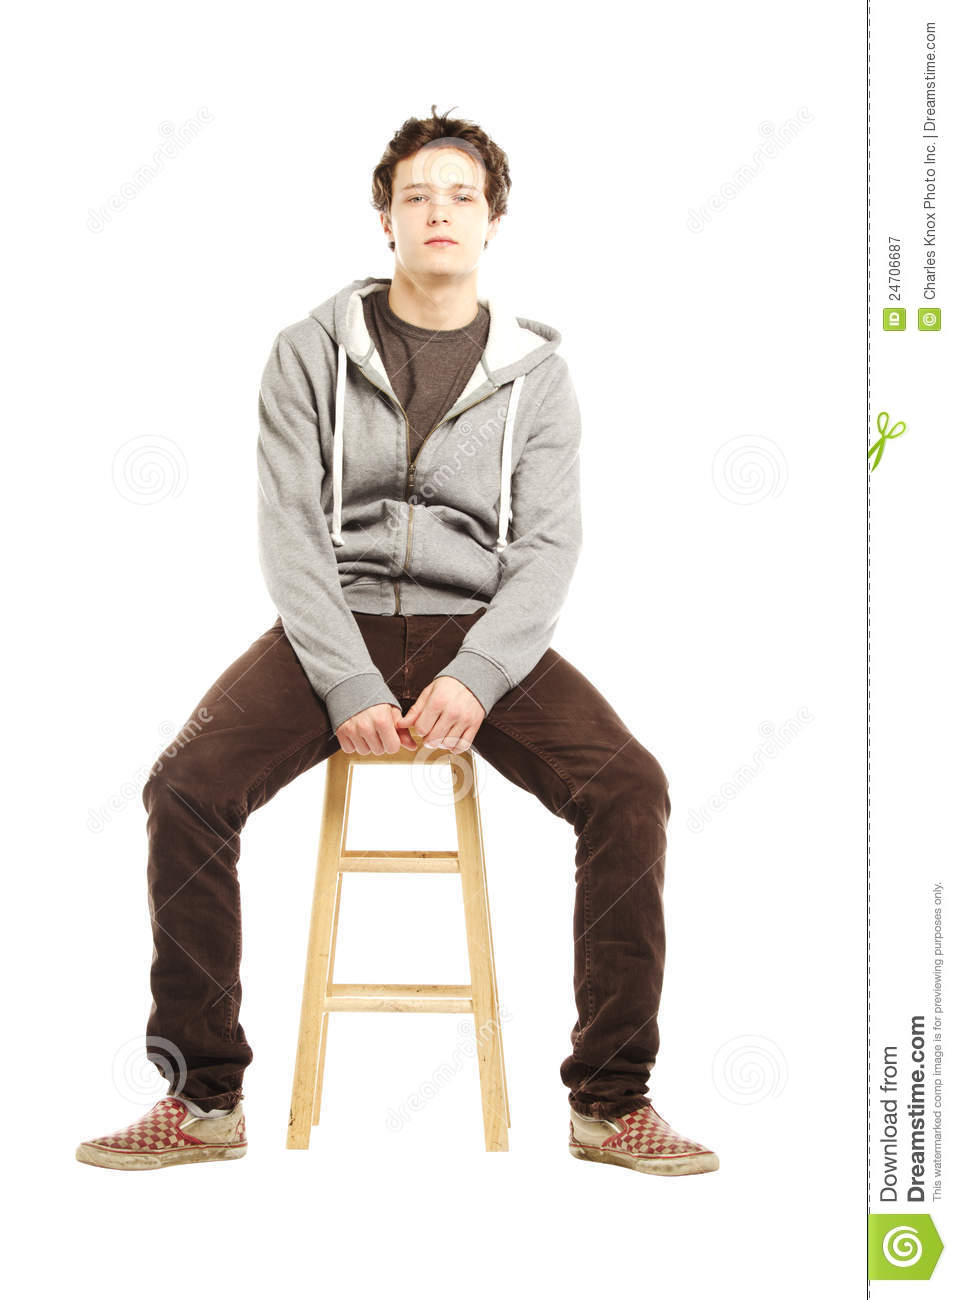 Young Man With Hip Style Sitting On Stool Royalty Free Stock Photography Image 24706687